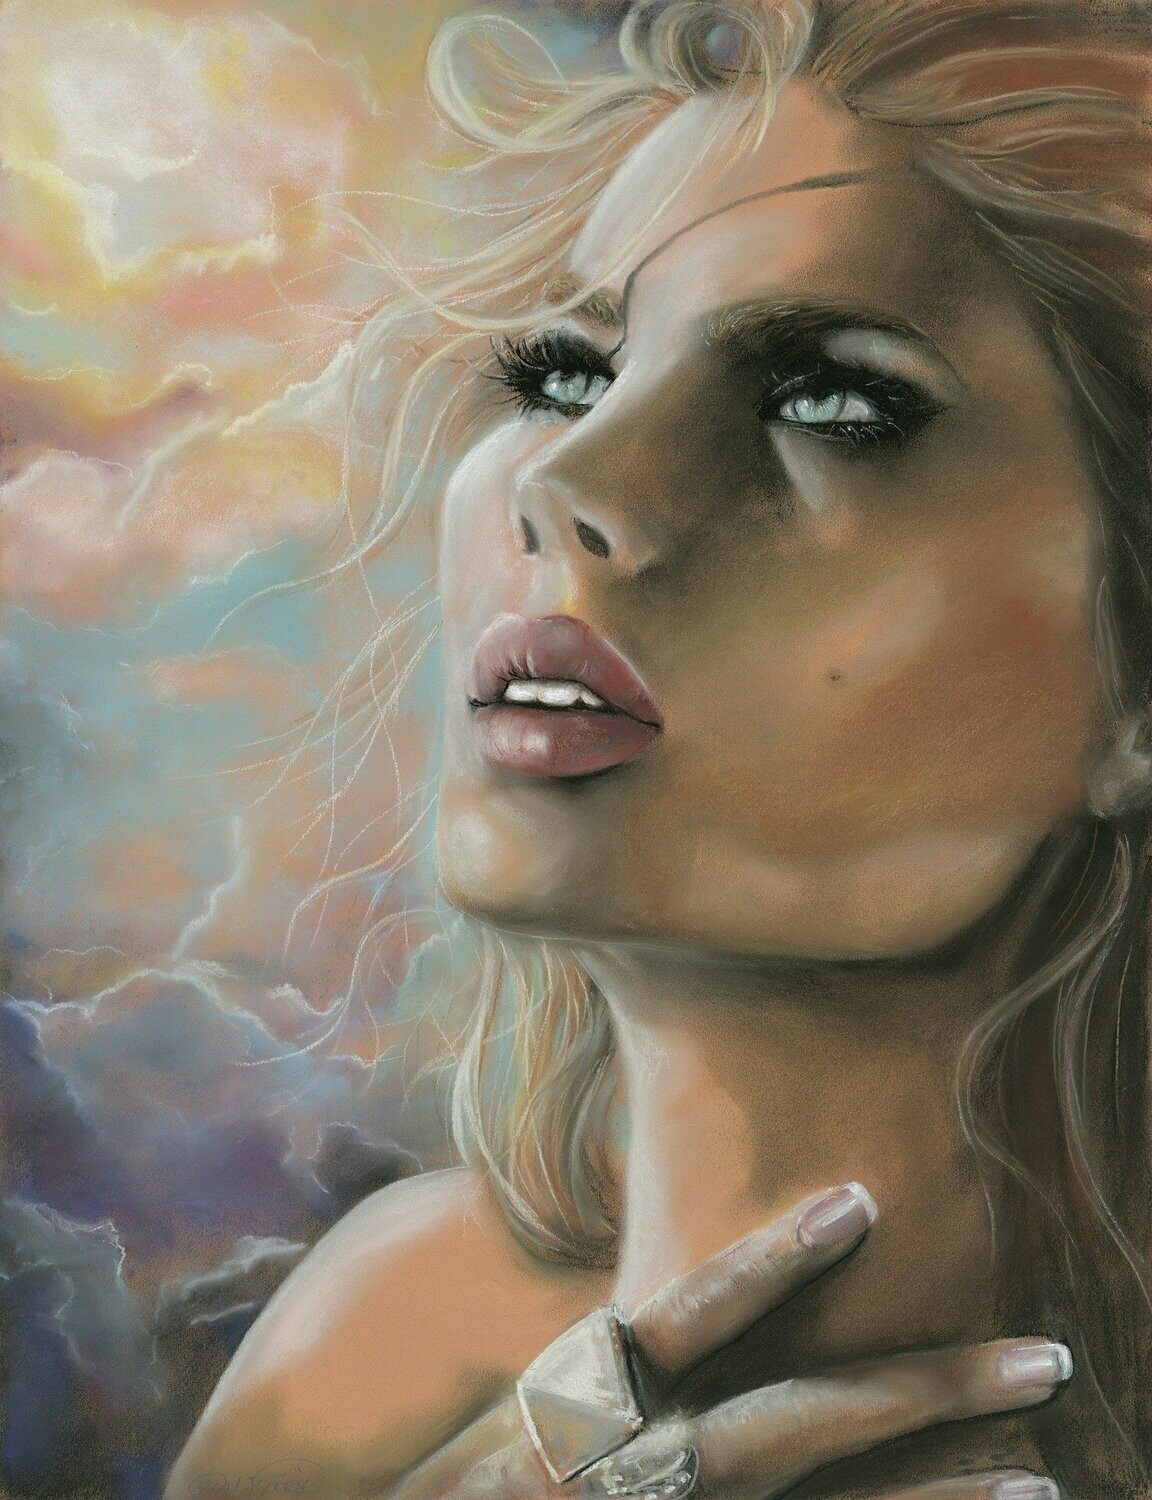 Sad Lady - Full Drill Diamond Painting - Specially ordered for you. Delivery is approximately 4 - 6 weeks.